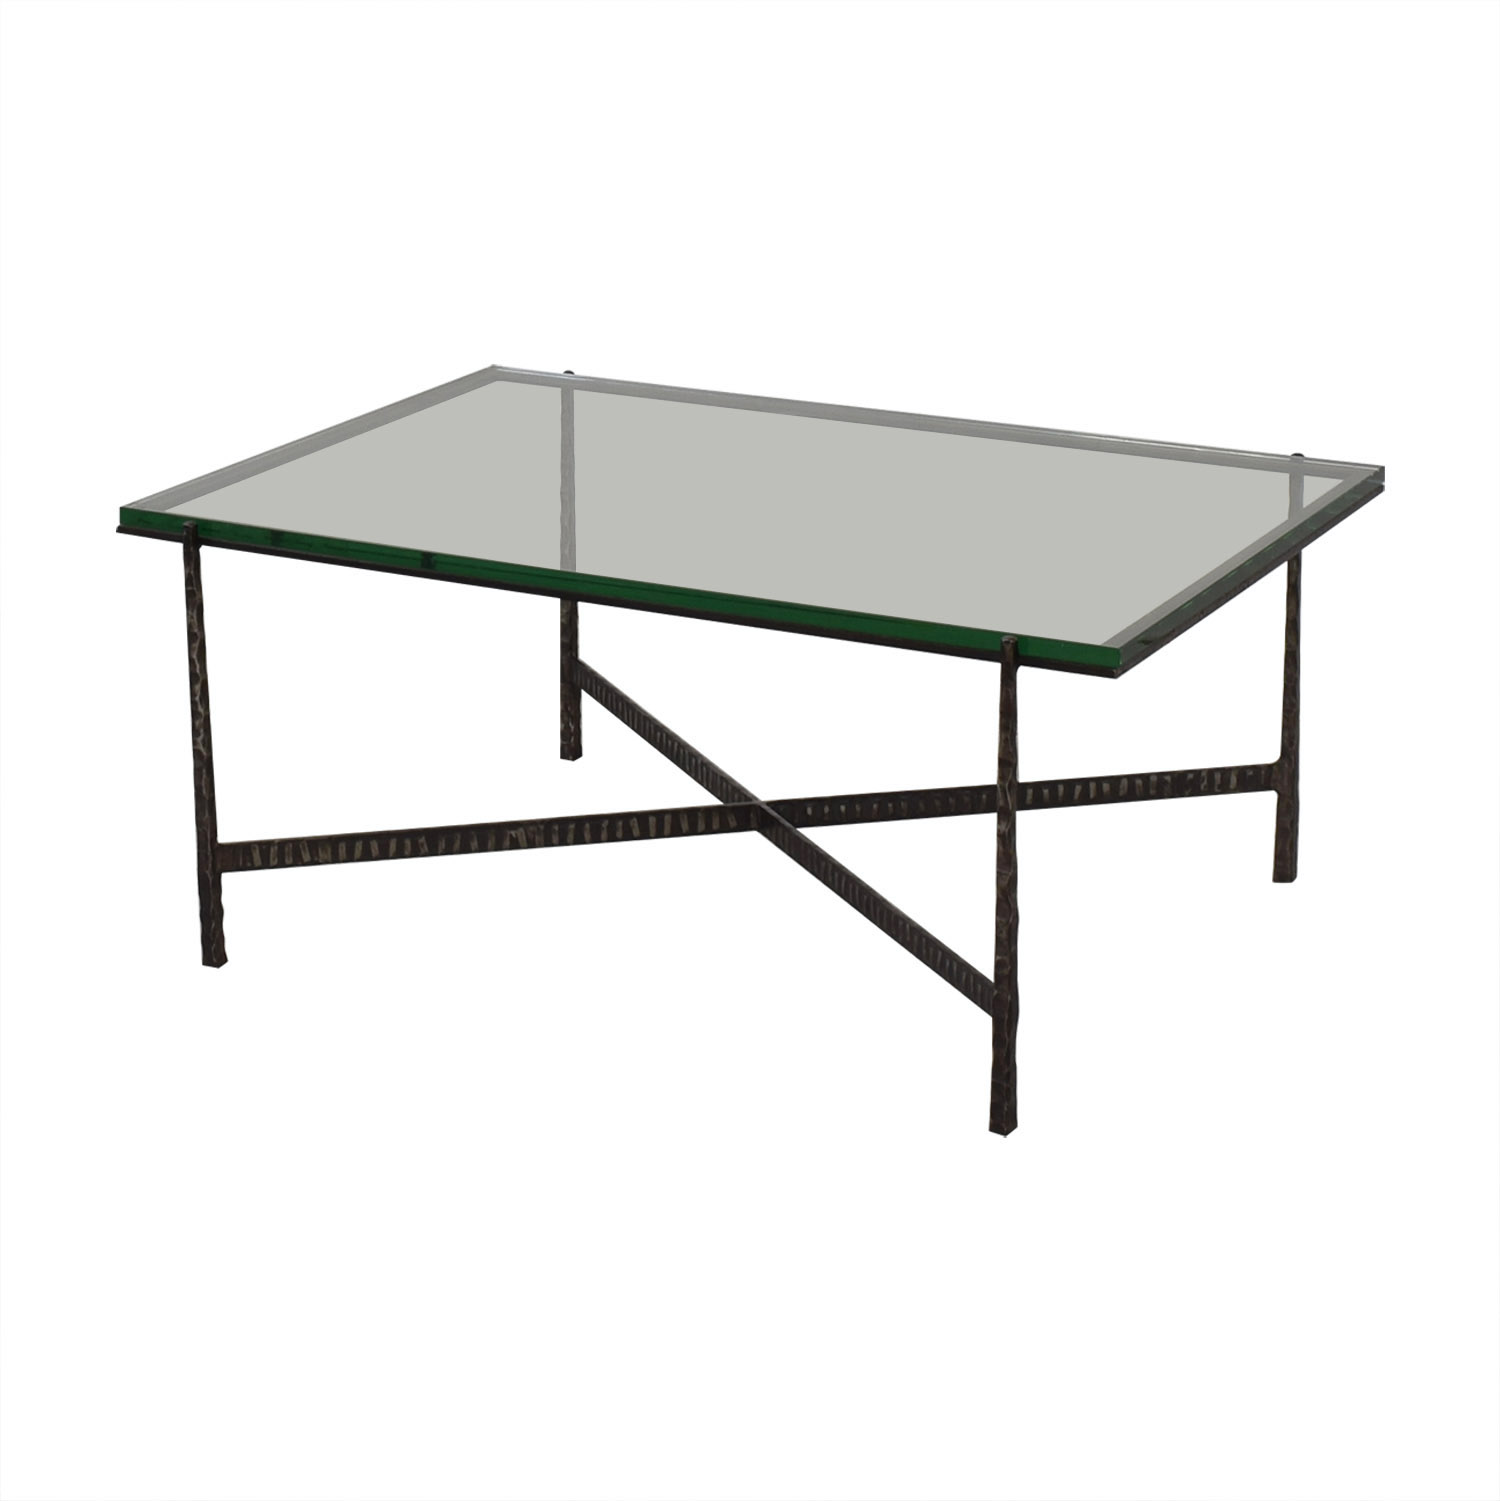 Crate & Barrel Glass Top Coffee Table / Tables